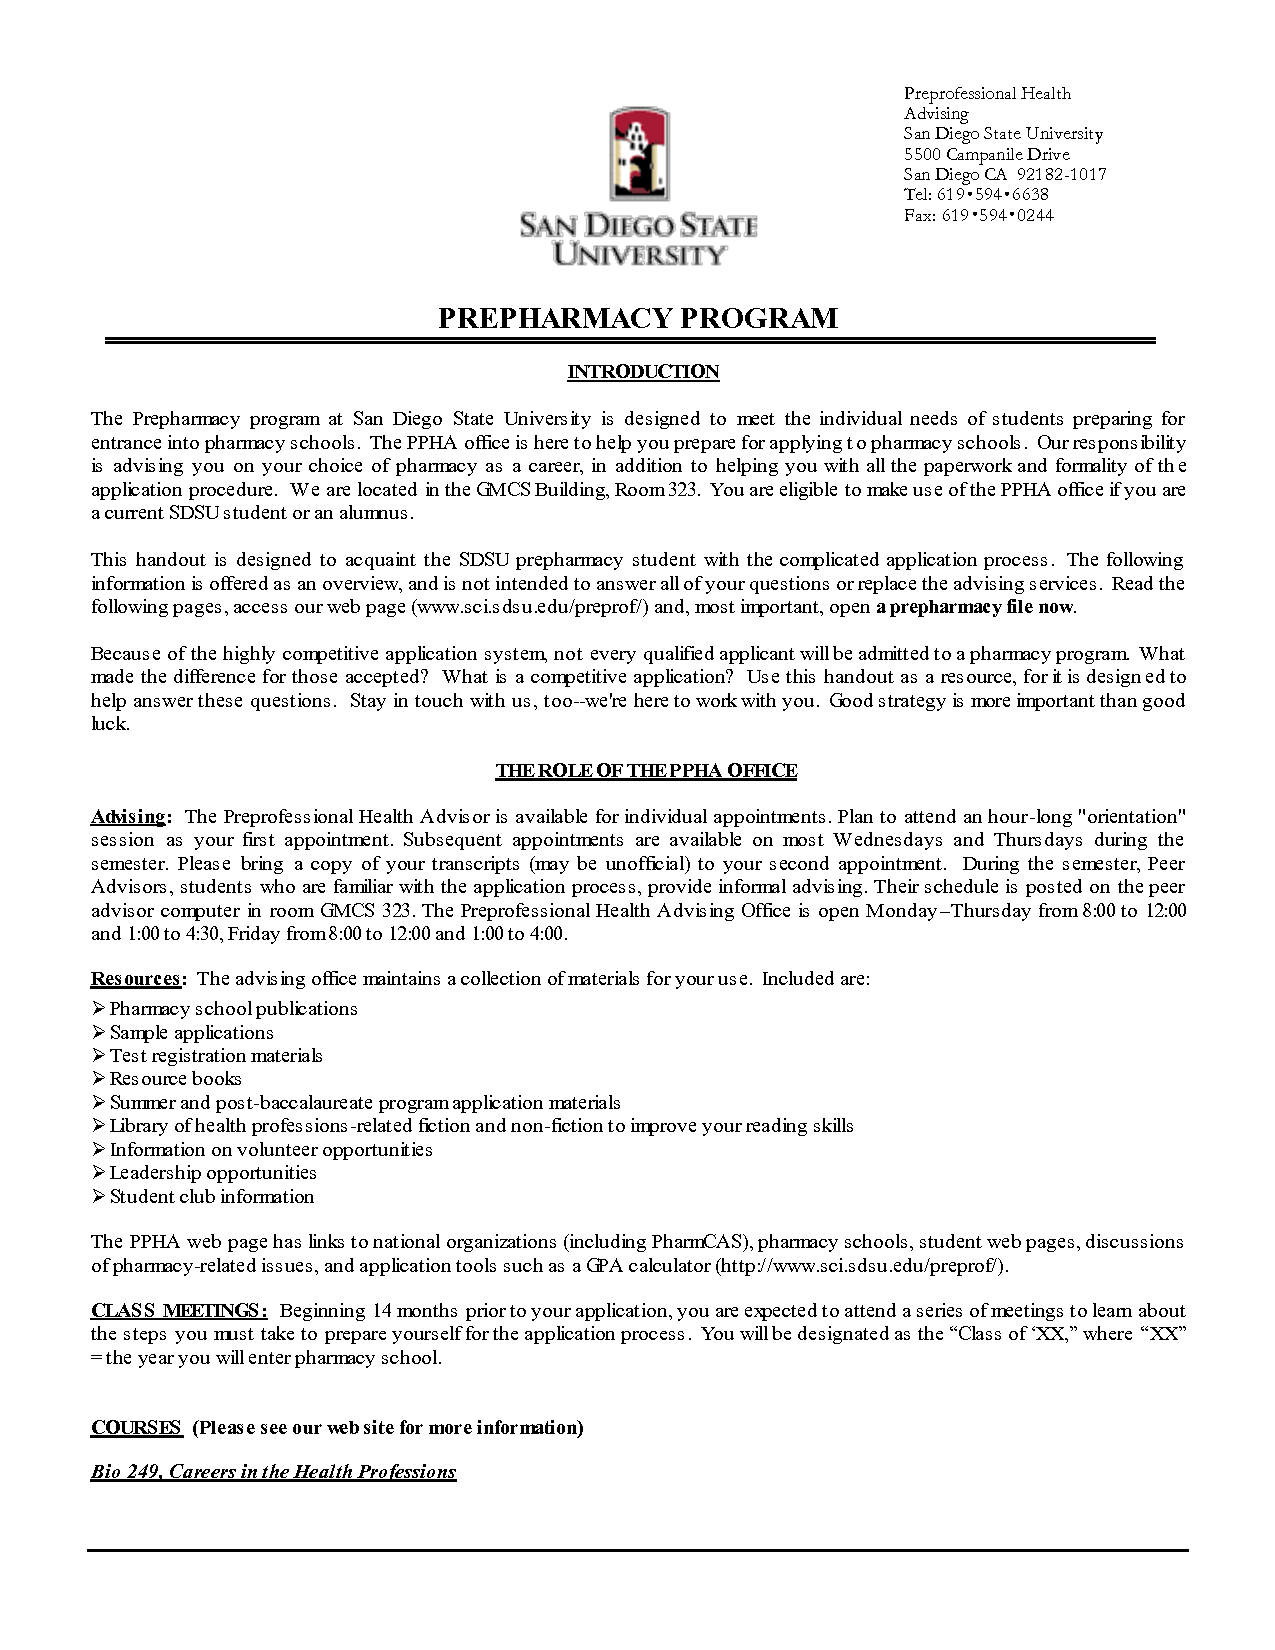 volunteer letter of recommendation template example-sample template for letter of re mendation 15-i